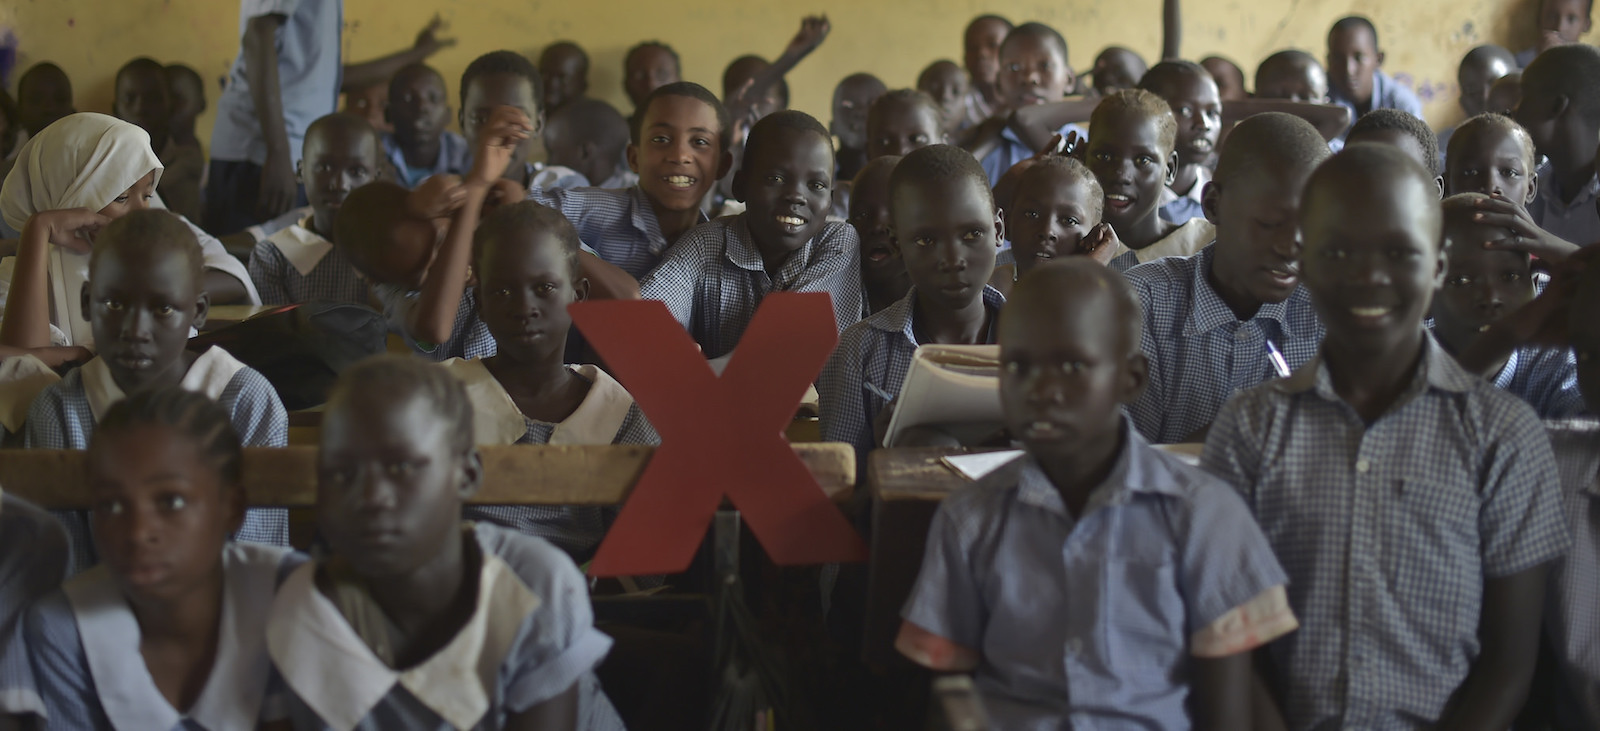 Refugees from Kakuma pose with the TedX logo (Photo: TEDxKakumacamp/Flickr)